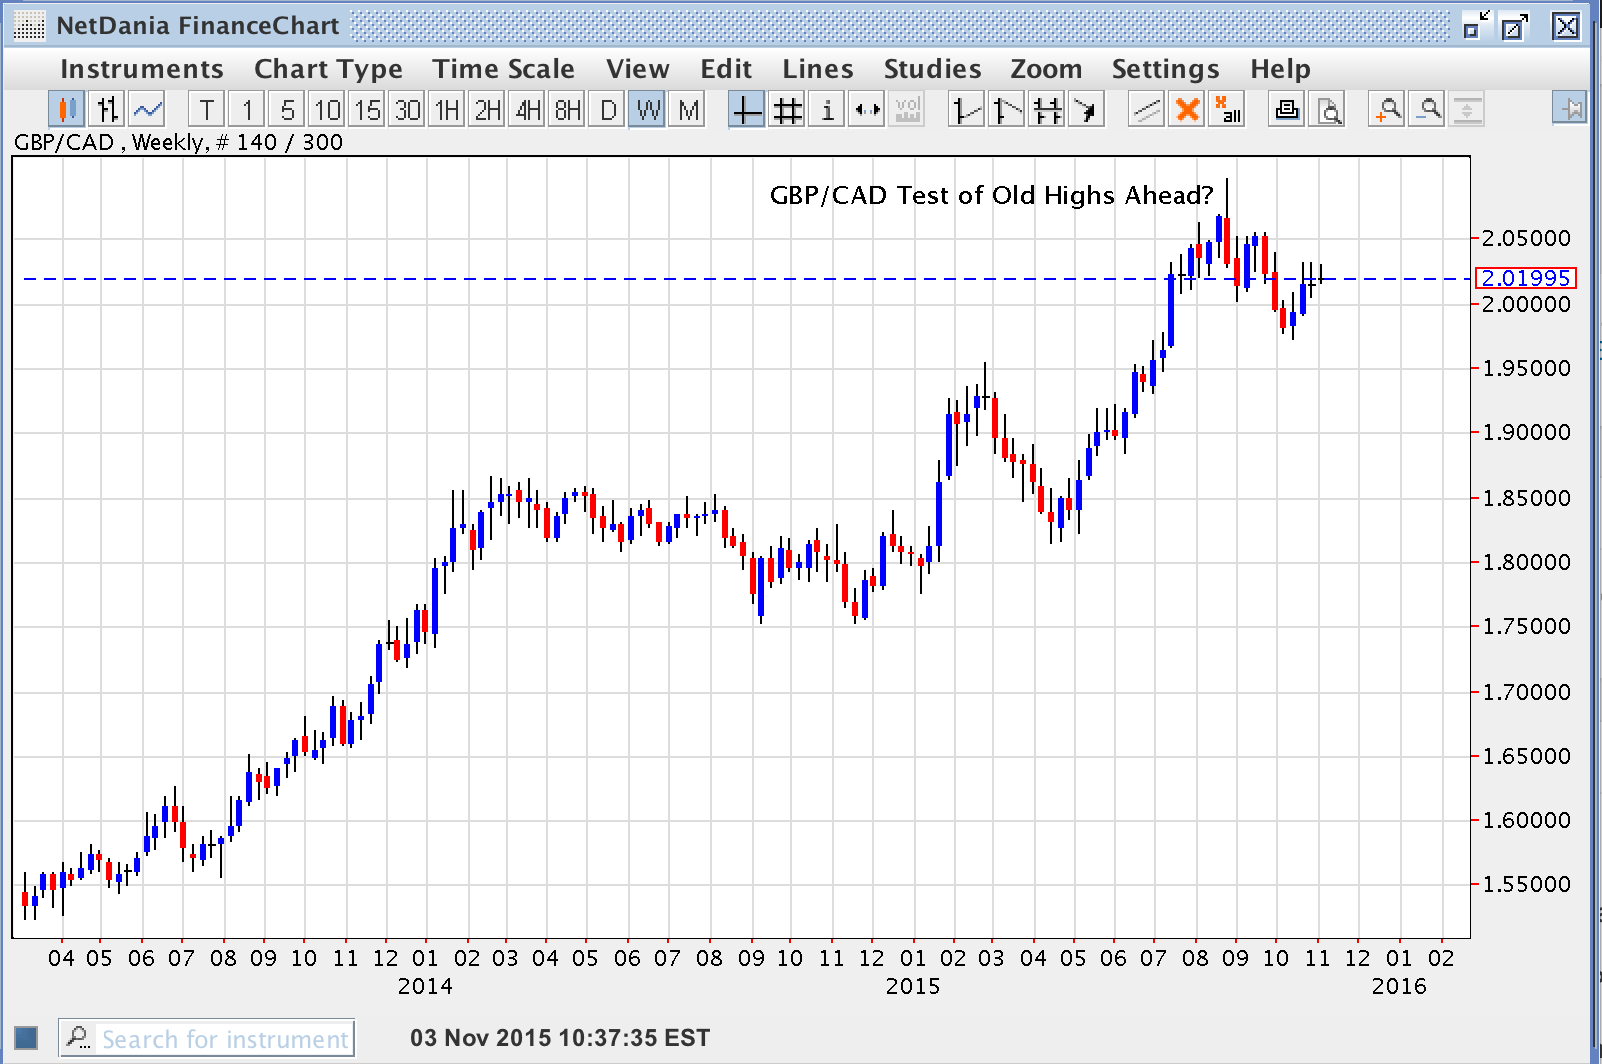 GBP/CAD – Test of Old Highs Ahead?